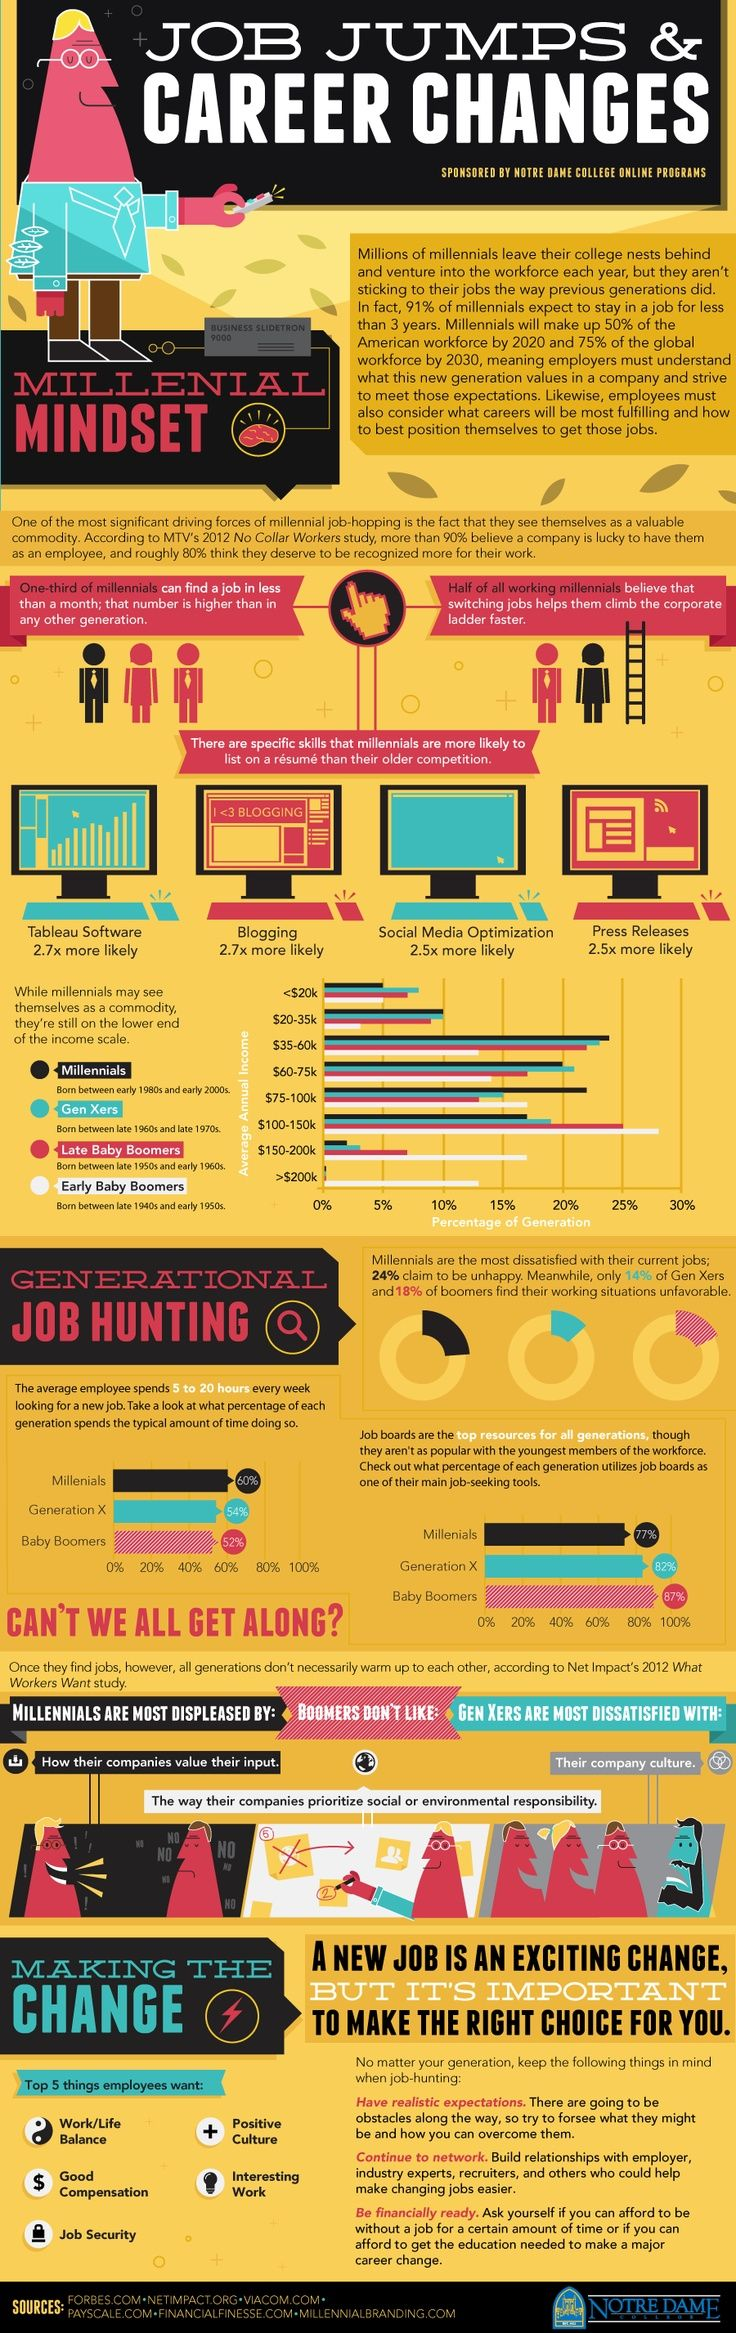 Job Jumps And Career Changes The Millennial Mindset Infographic Career Change Career Planning Job Hunting